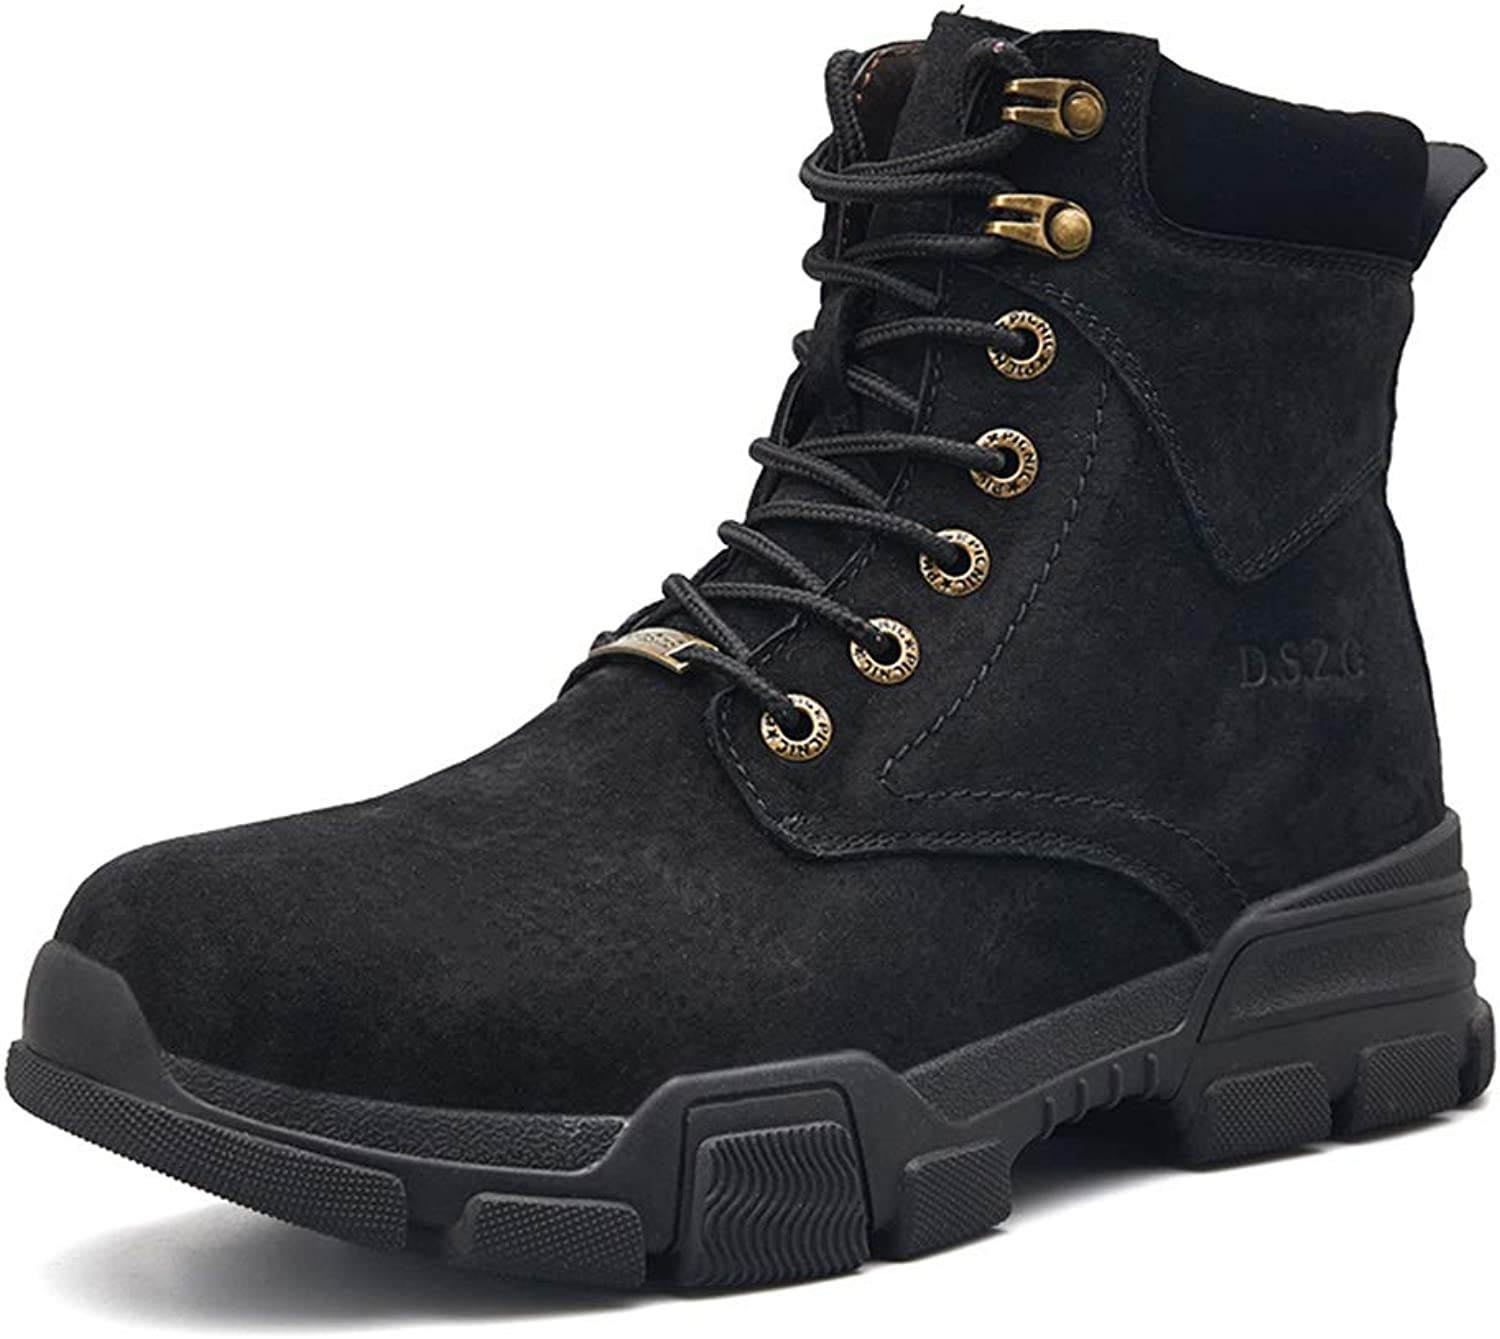 Men's shoes Men's Martin Boots, Fall Winter Trend British Short Boots Men's Retro Leather Boots Wild High-top Ankle Boots Men's Fashion Boots (color   B, Size   42)